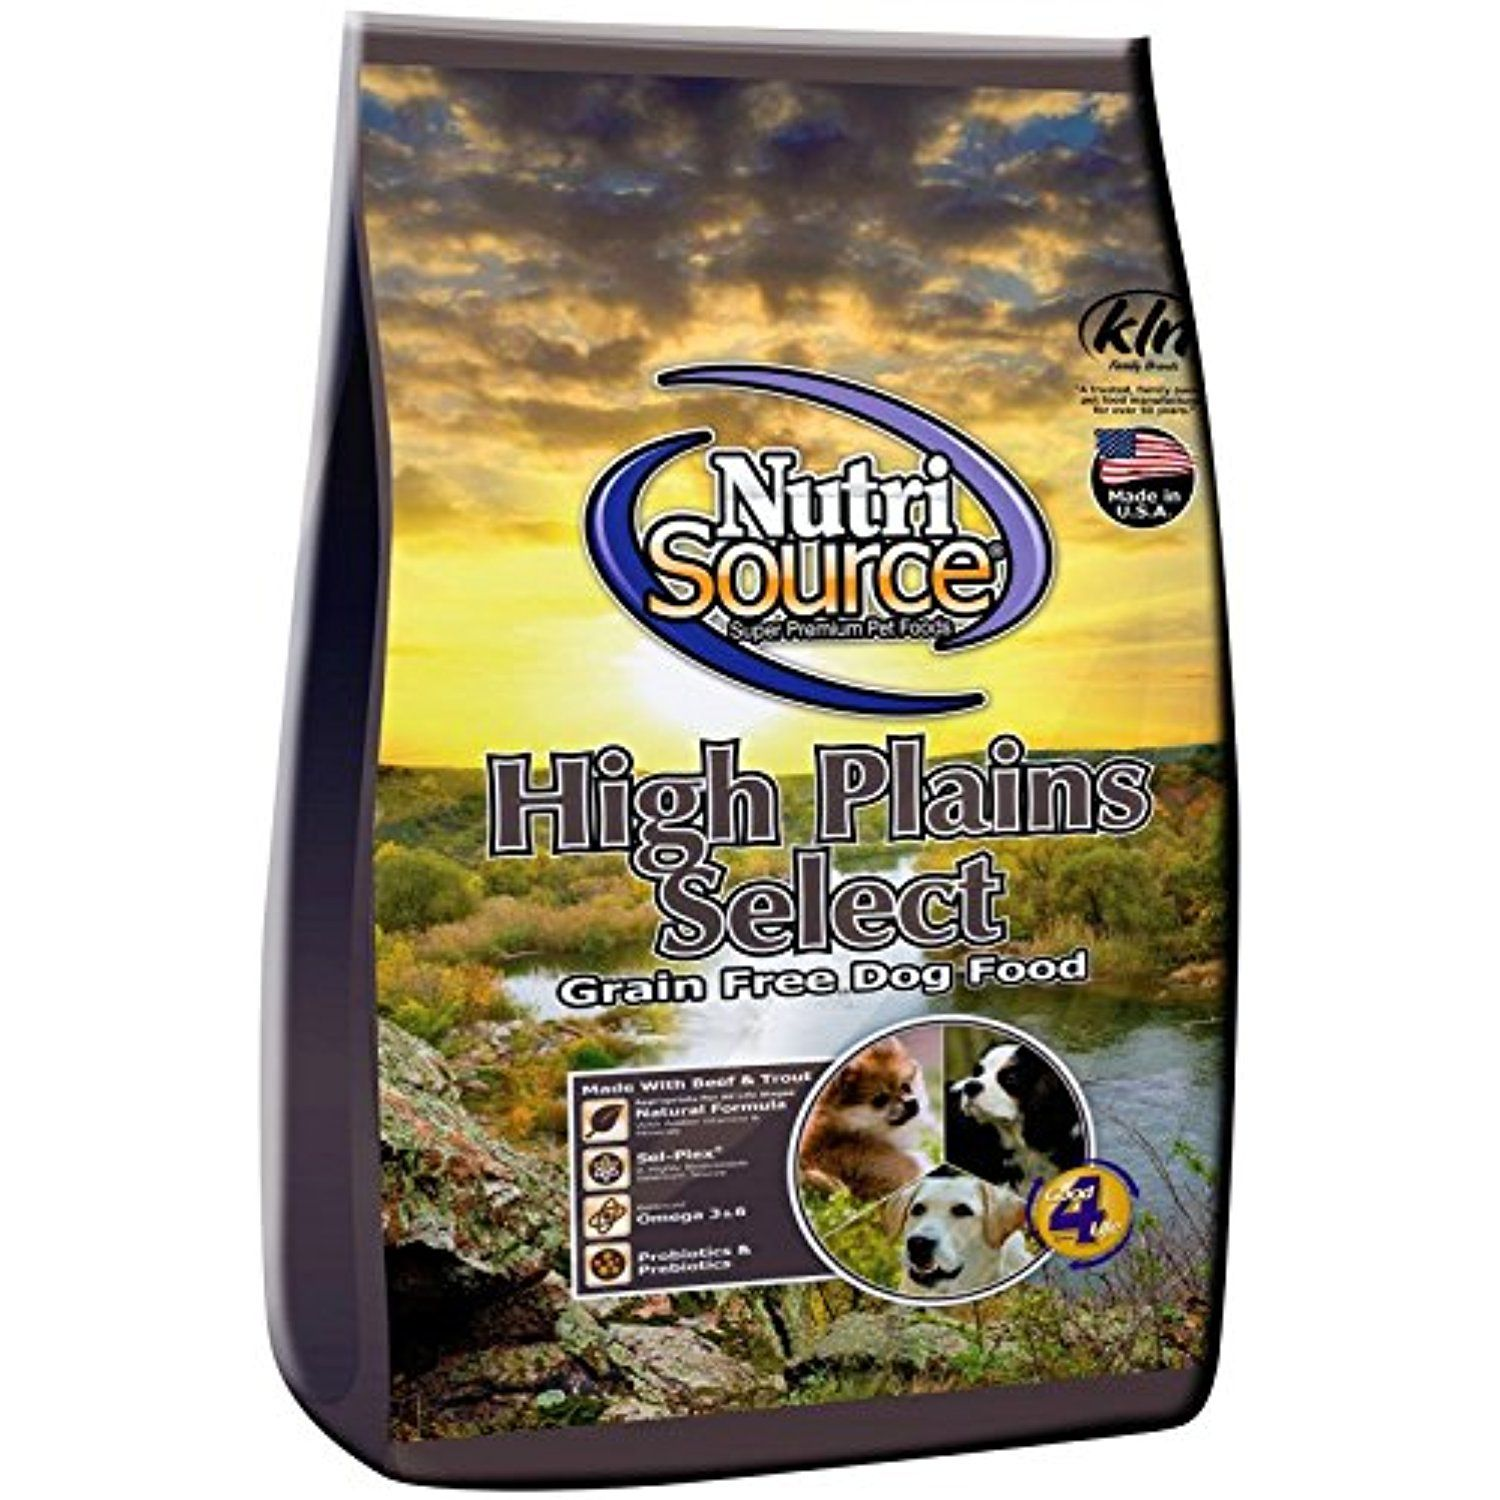 Nutri Source High Plains Select Gf Dog Food 30 Lb You Could